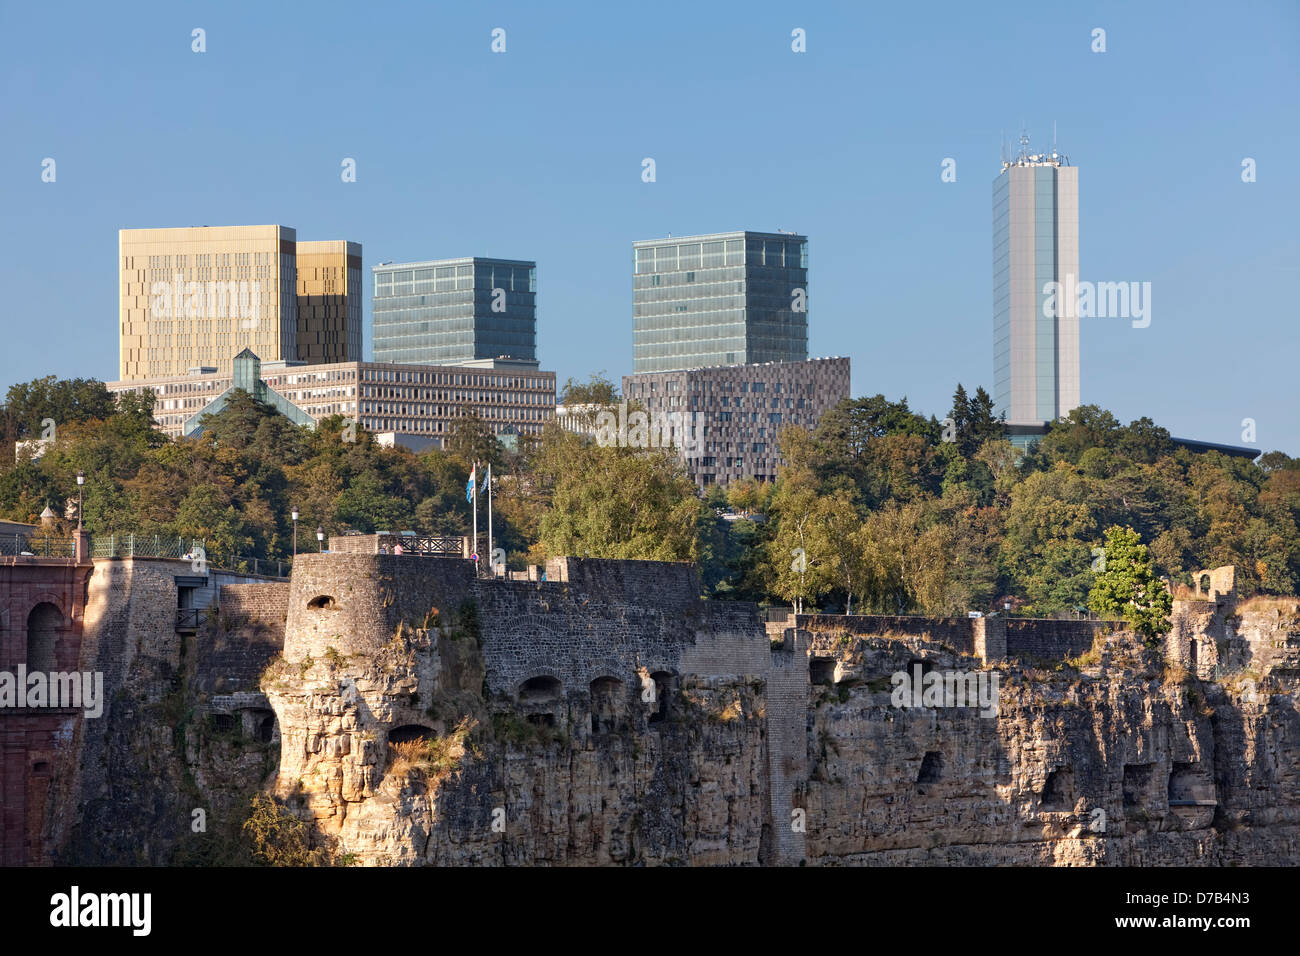 View of the EU buildings in the European quarter, Kirchberg-Plateau, Luxembourg City - Stock Image